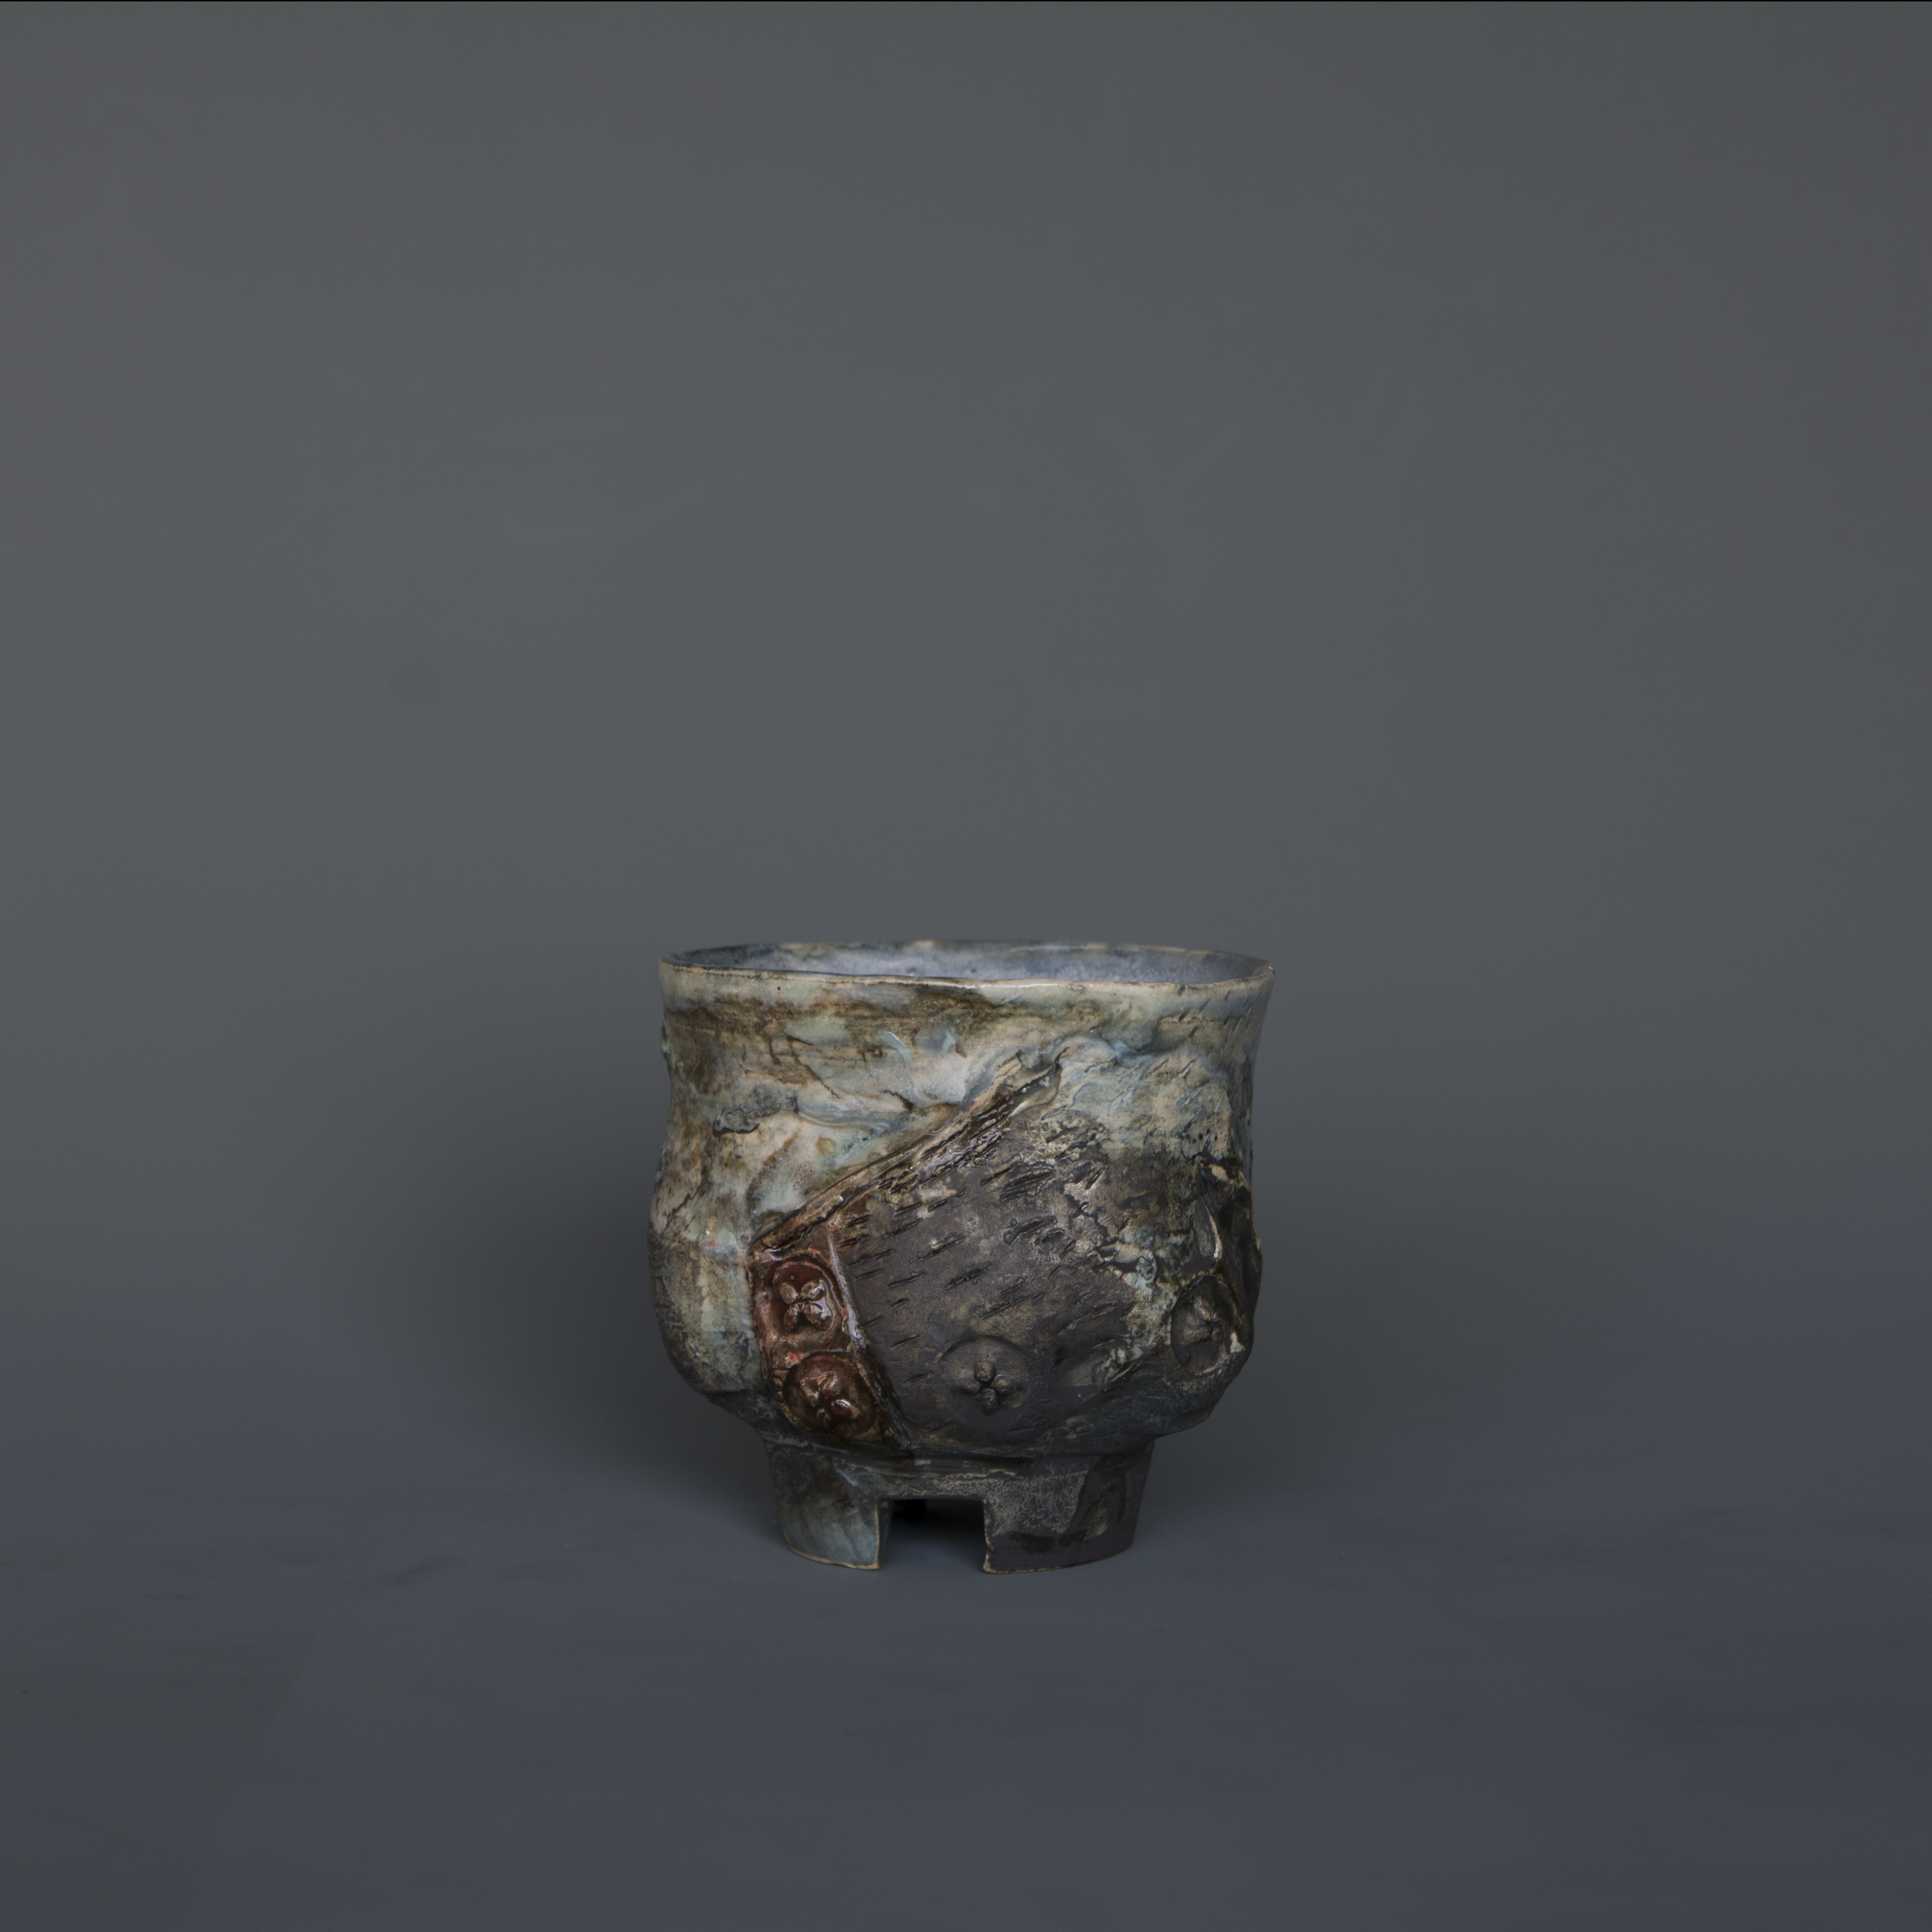 Helle bovbjerg ceramic cup